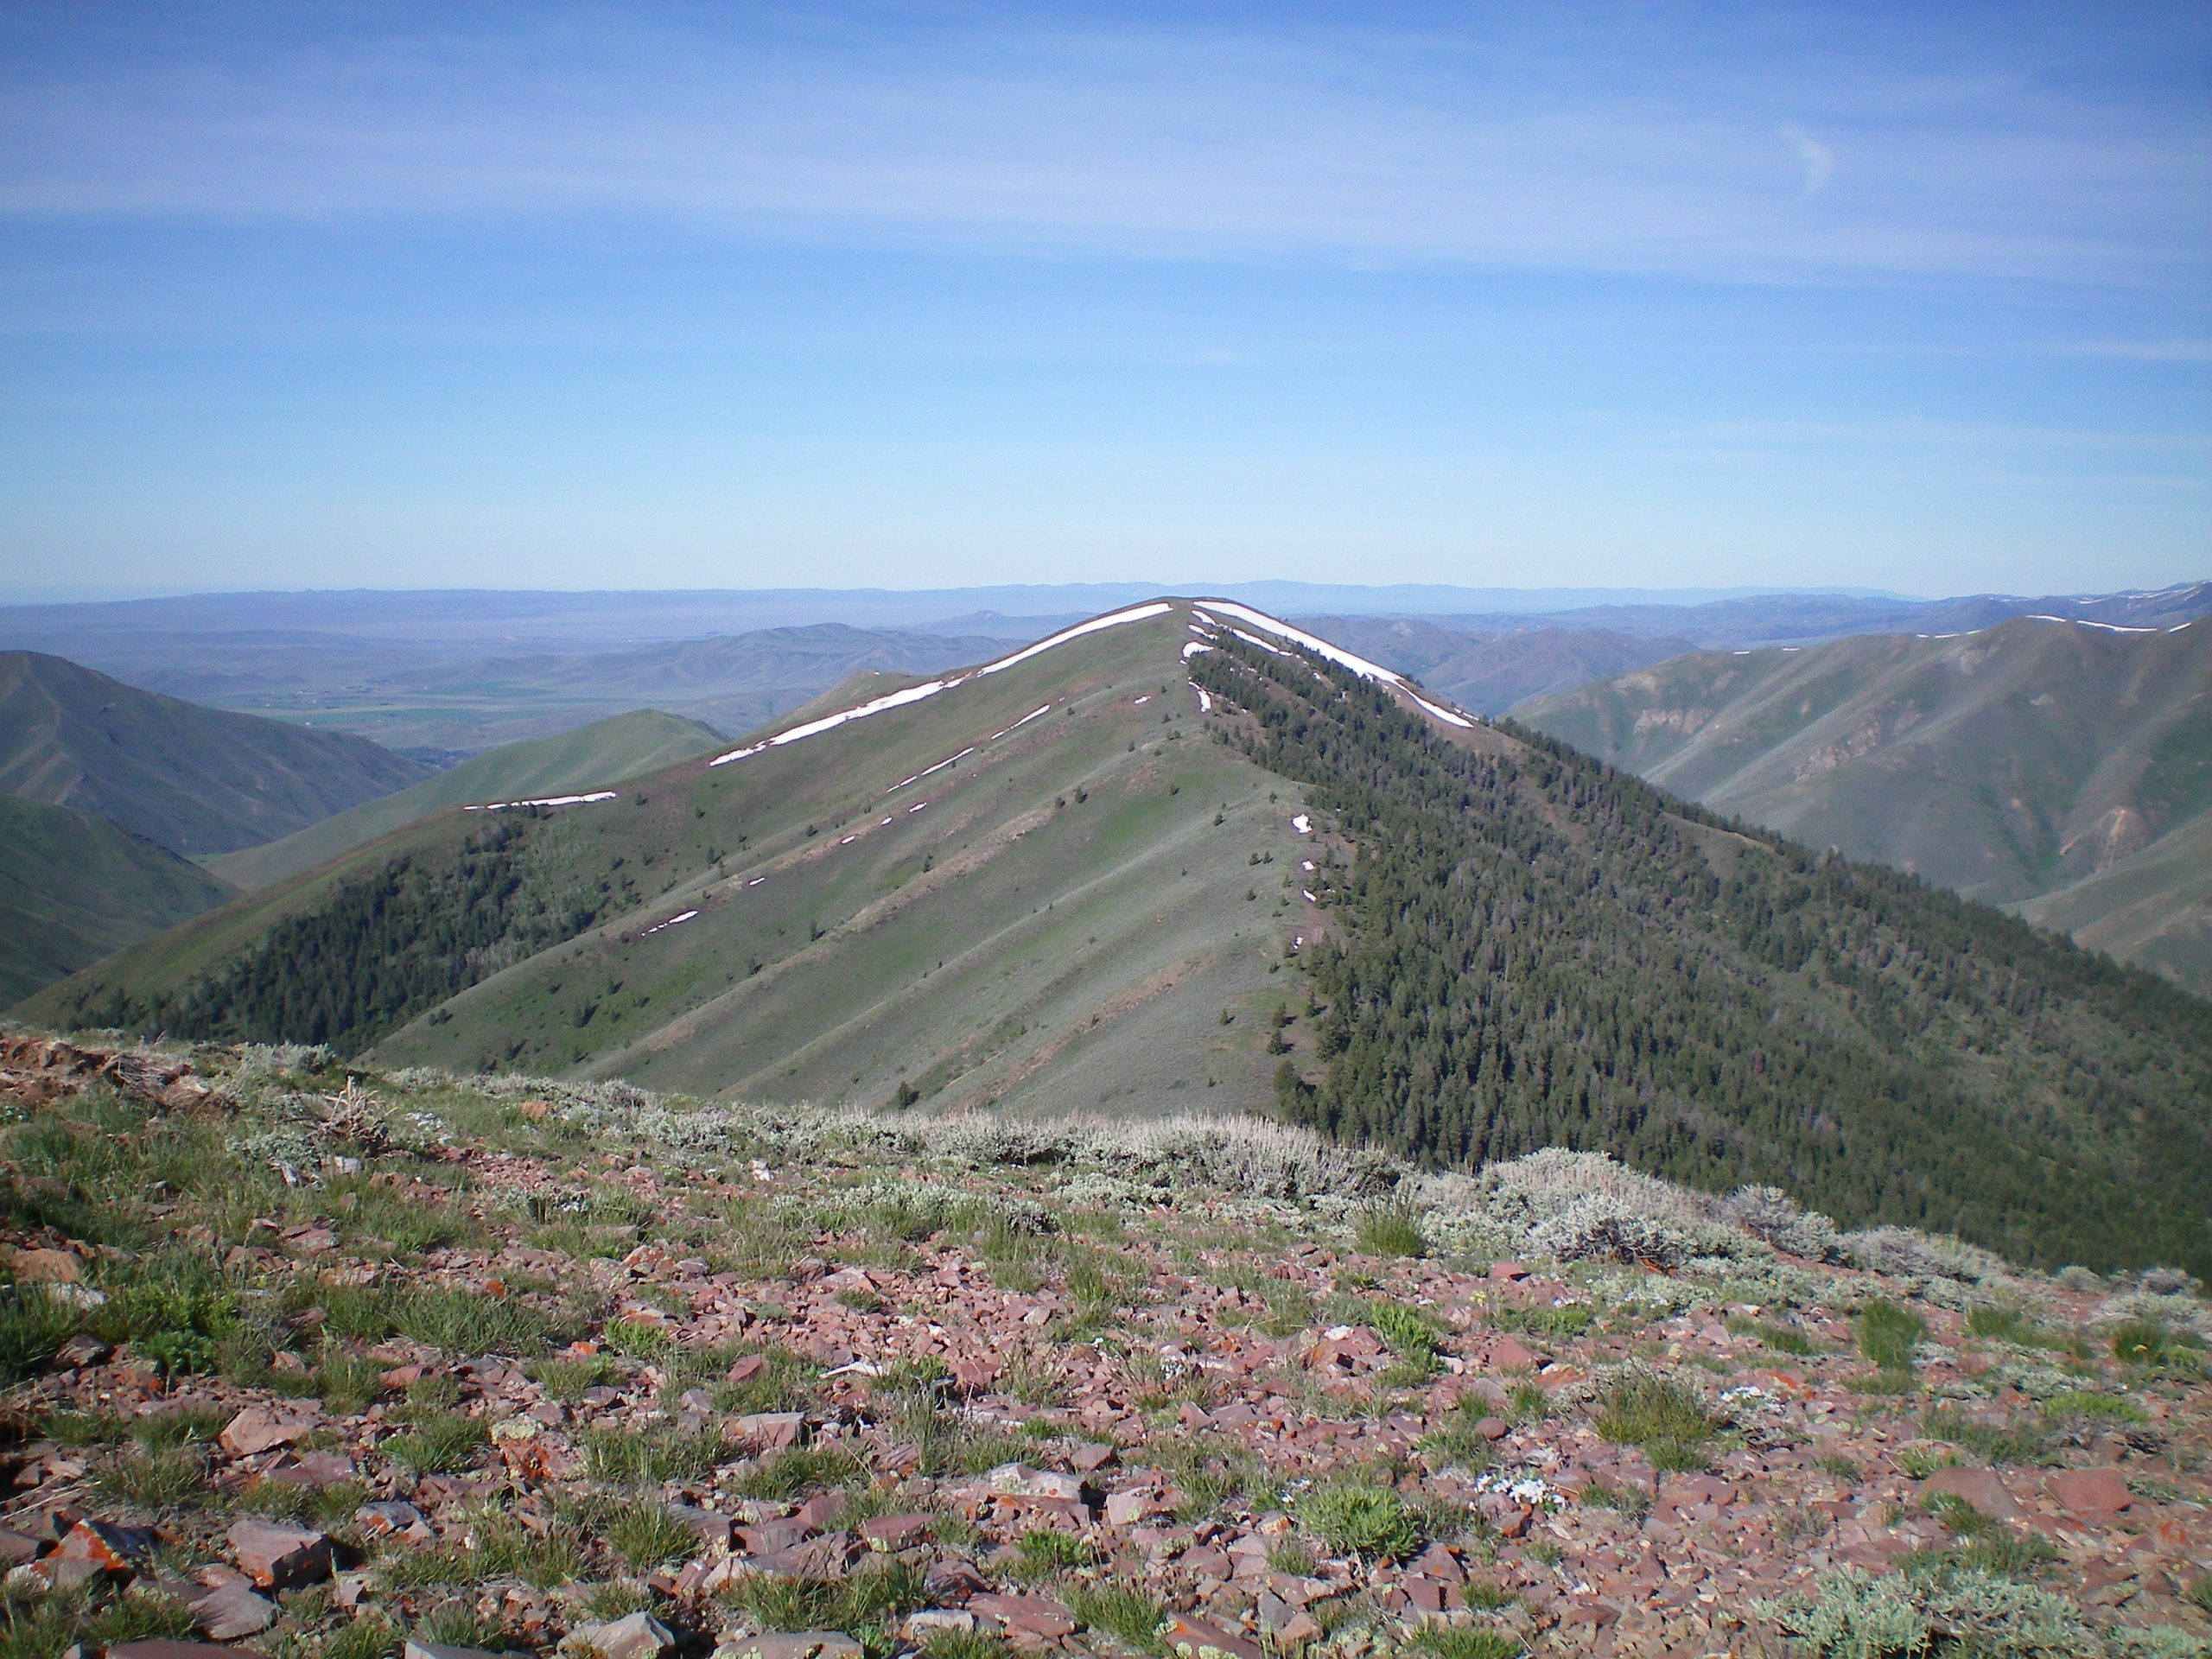 Peak 8301 and its Northeast Ridge (center of photo) and Southeast Ridge (descending leftward from the summit with a snow line on its N edge), as viewed from the summit of Vue Benchmark. Livingston Douglas Photo